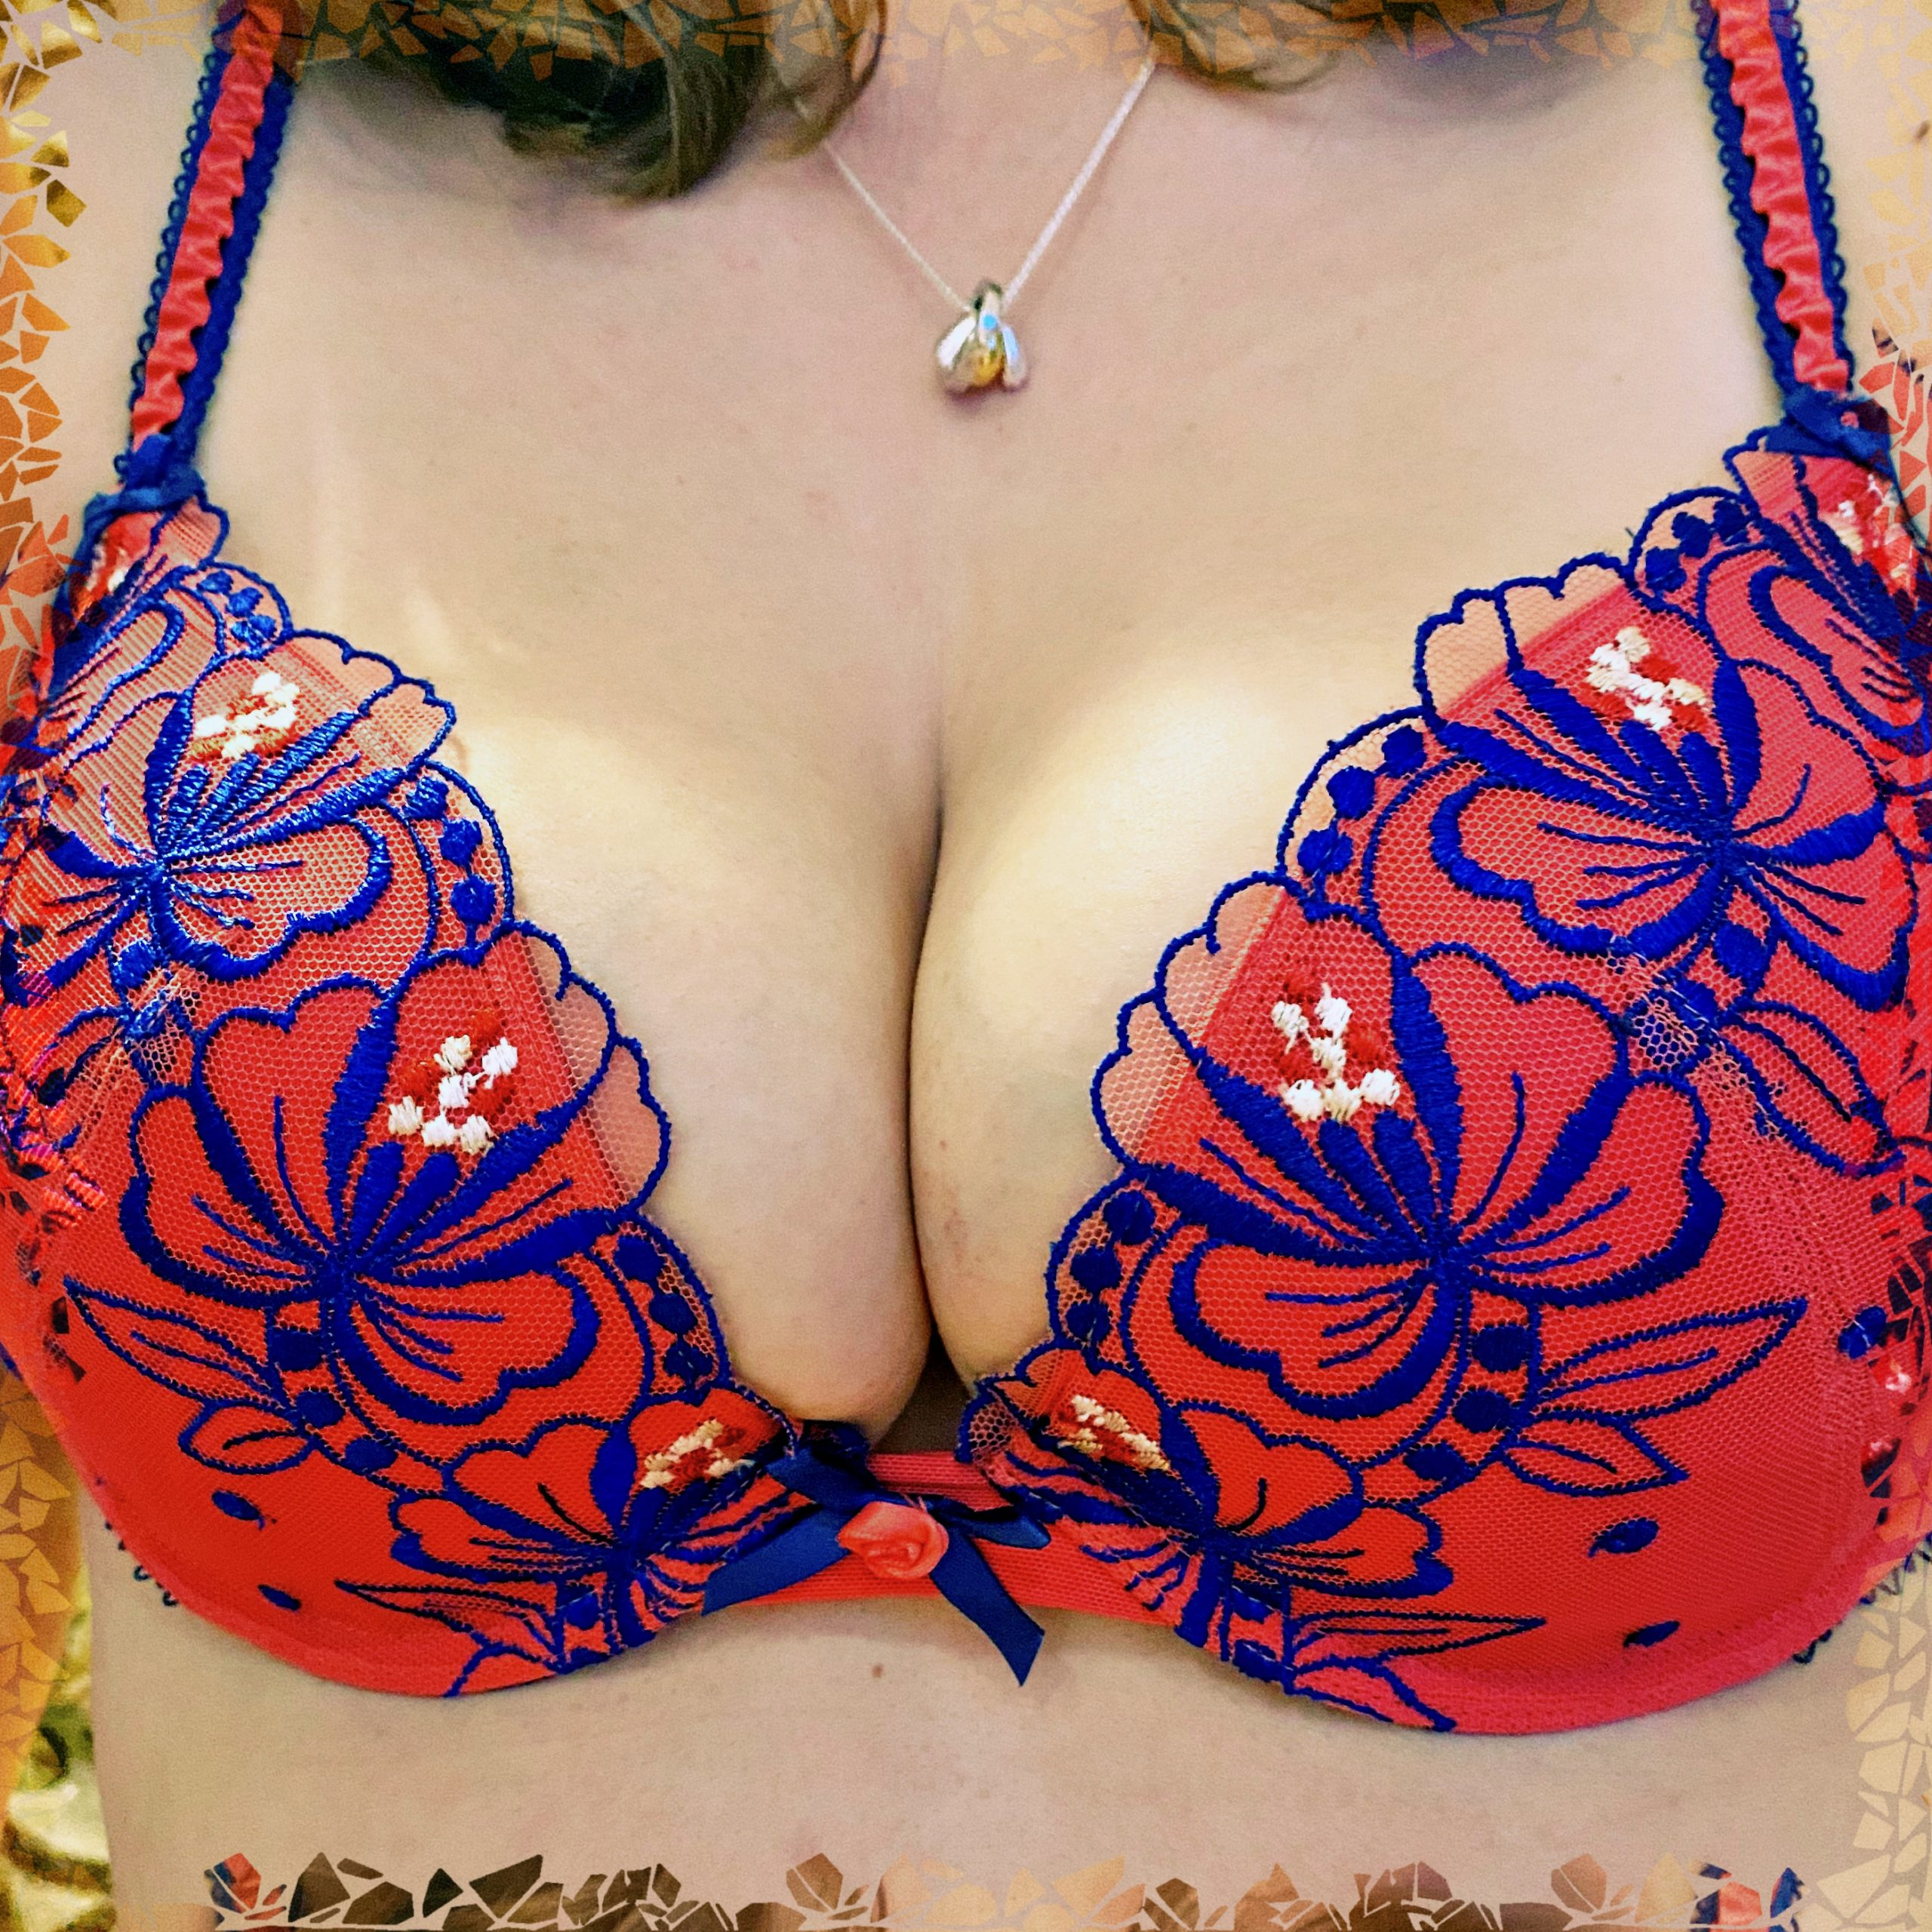 A photo of me wearing a bra that doesn't fit. It's a bit of a squeeze!